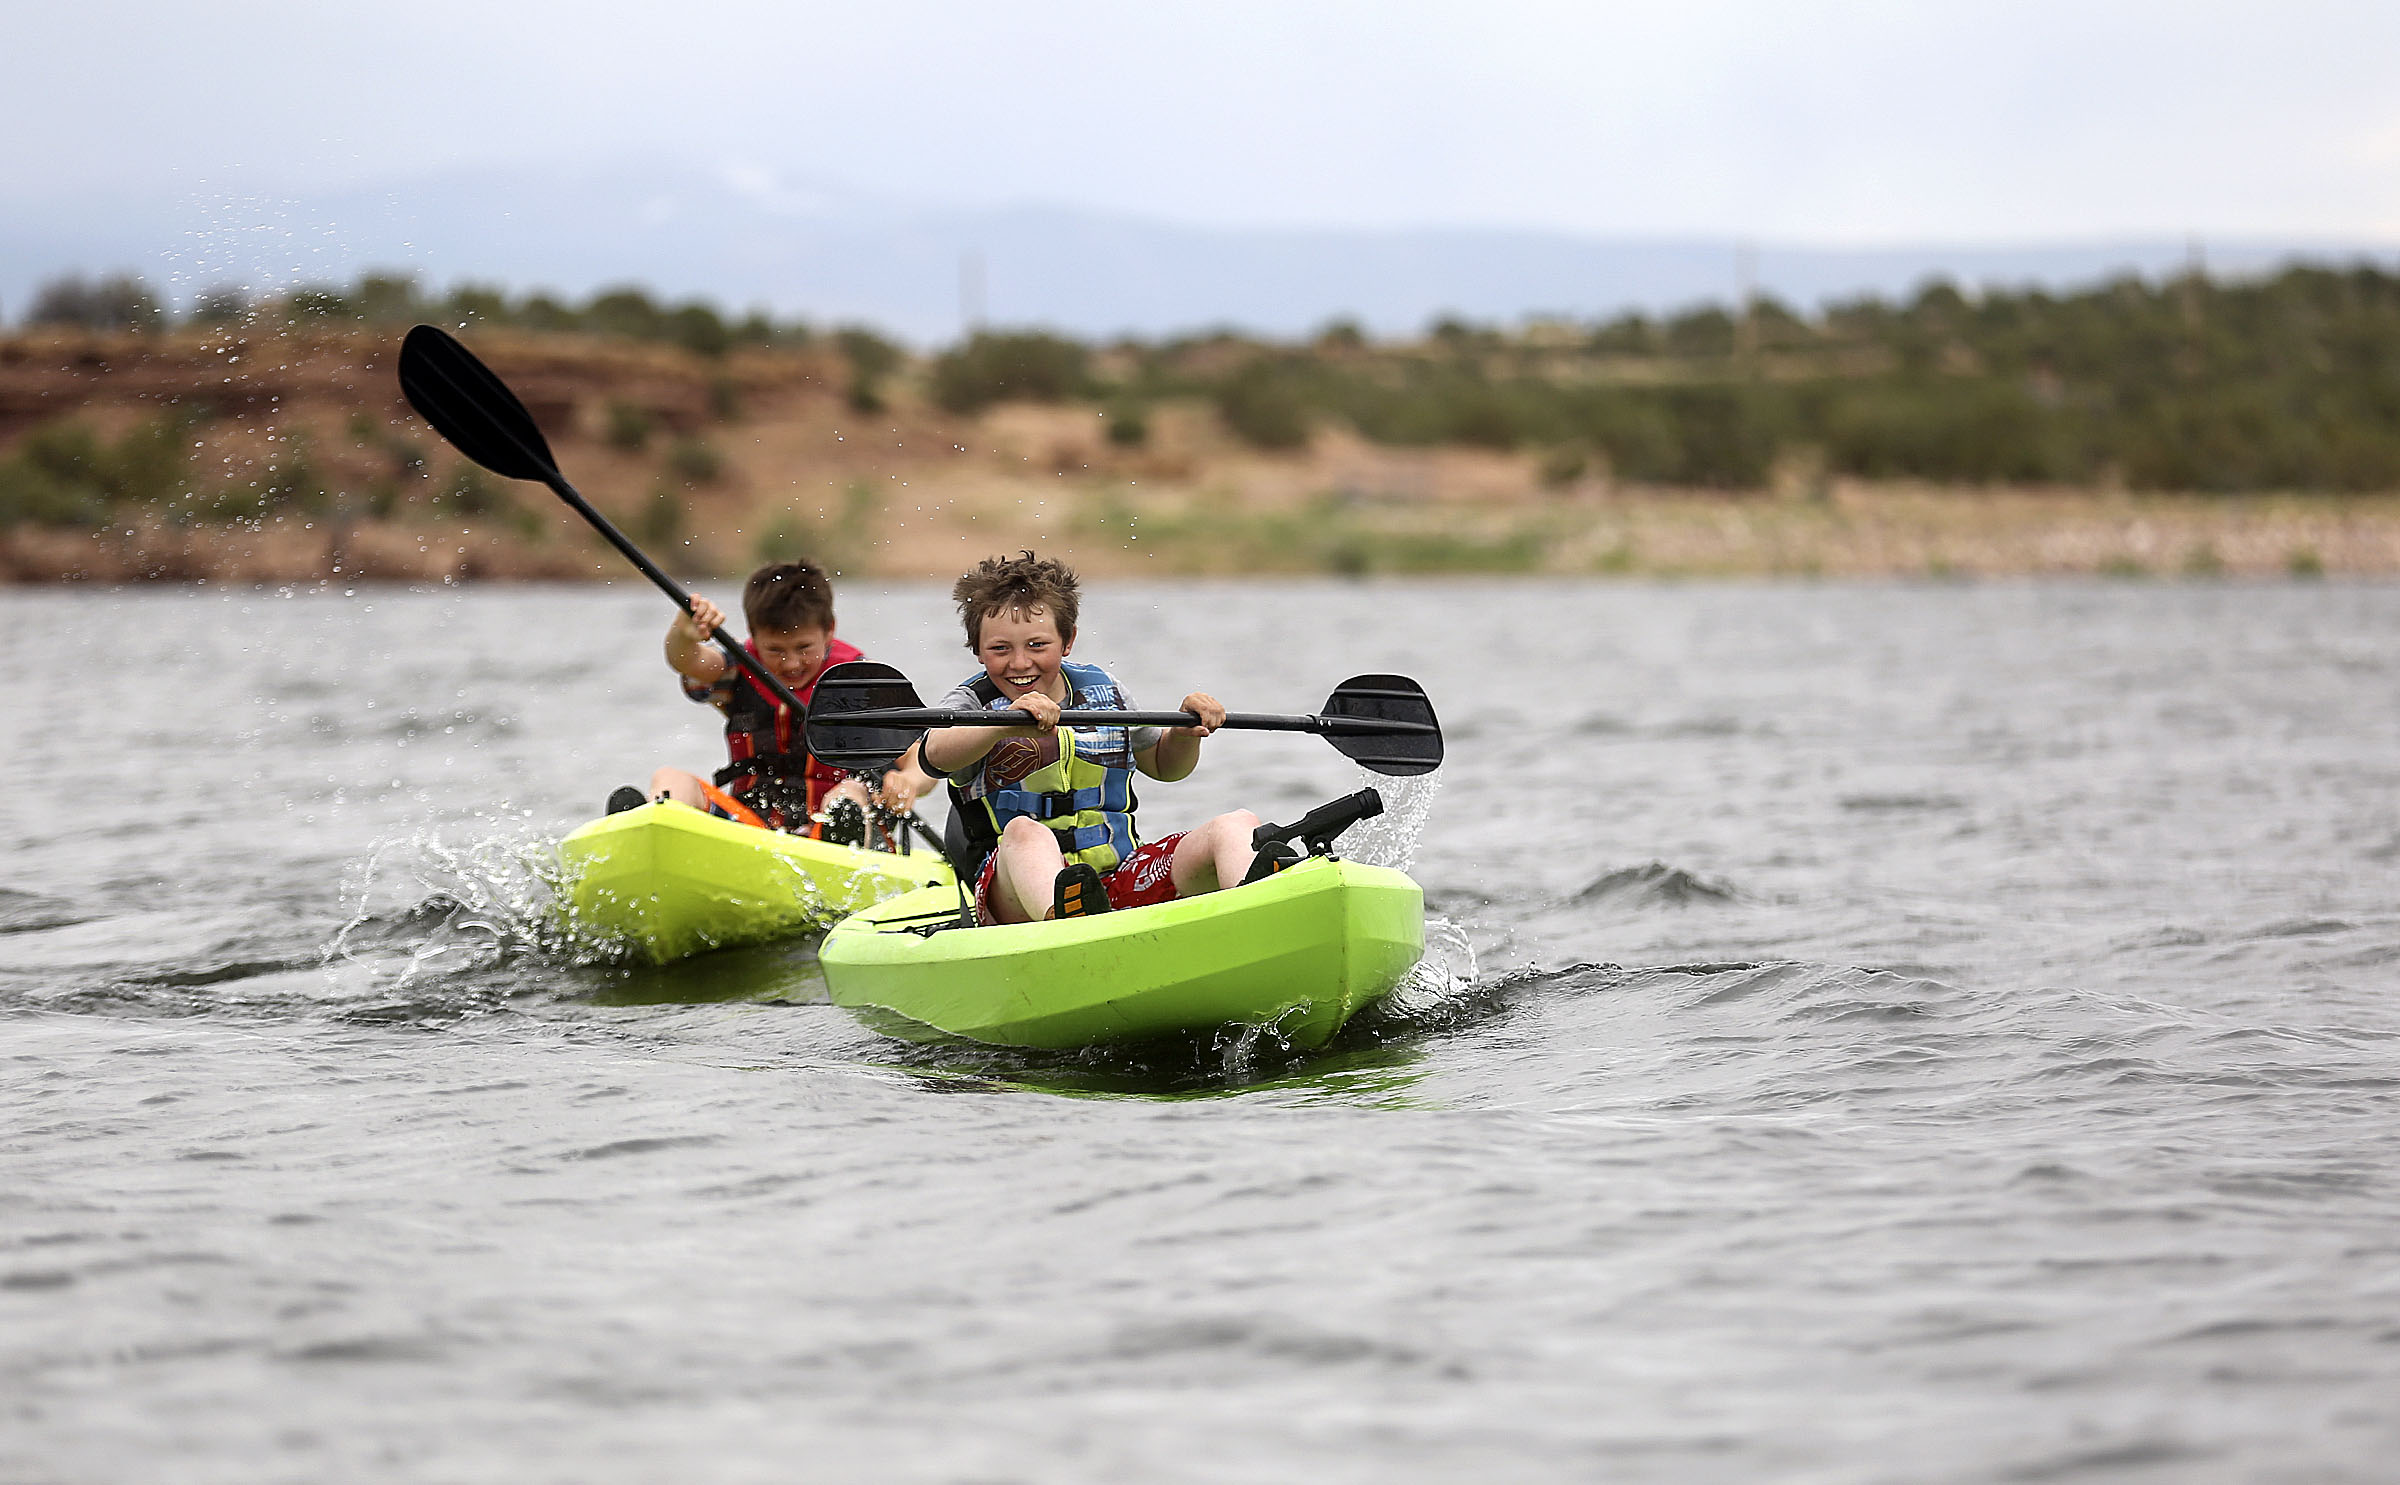 Jonathan Tibbets, front, and Logan Nelson, kayak on Big Sand Wash Reservoir near Altamont, Duchesne County, on Tuesday, June 16, 2020.